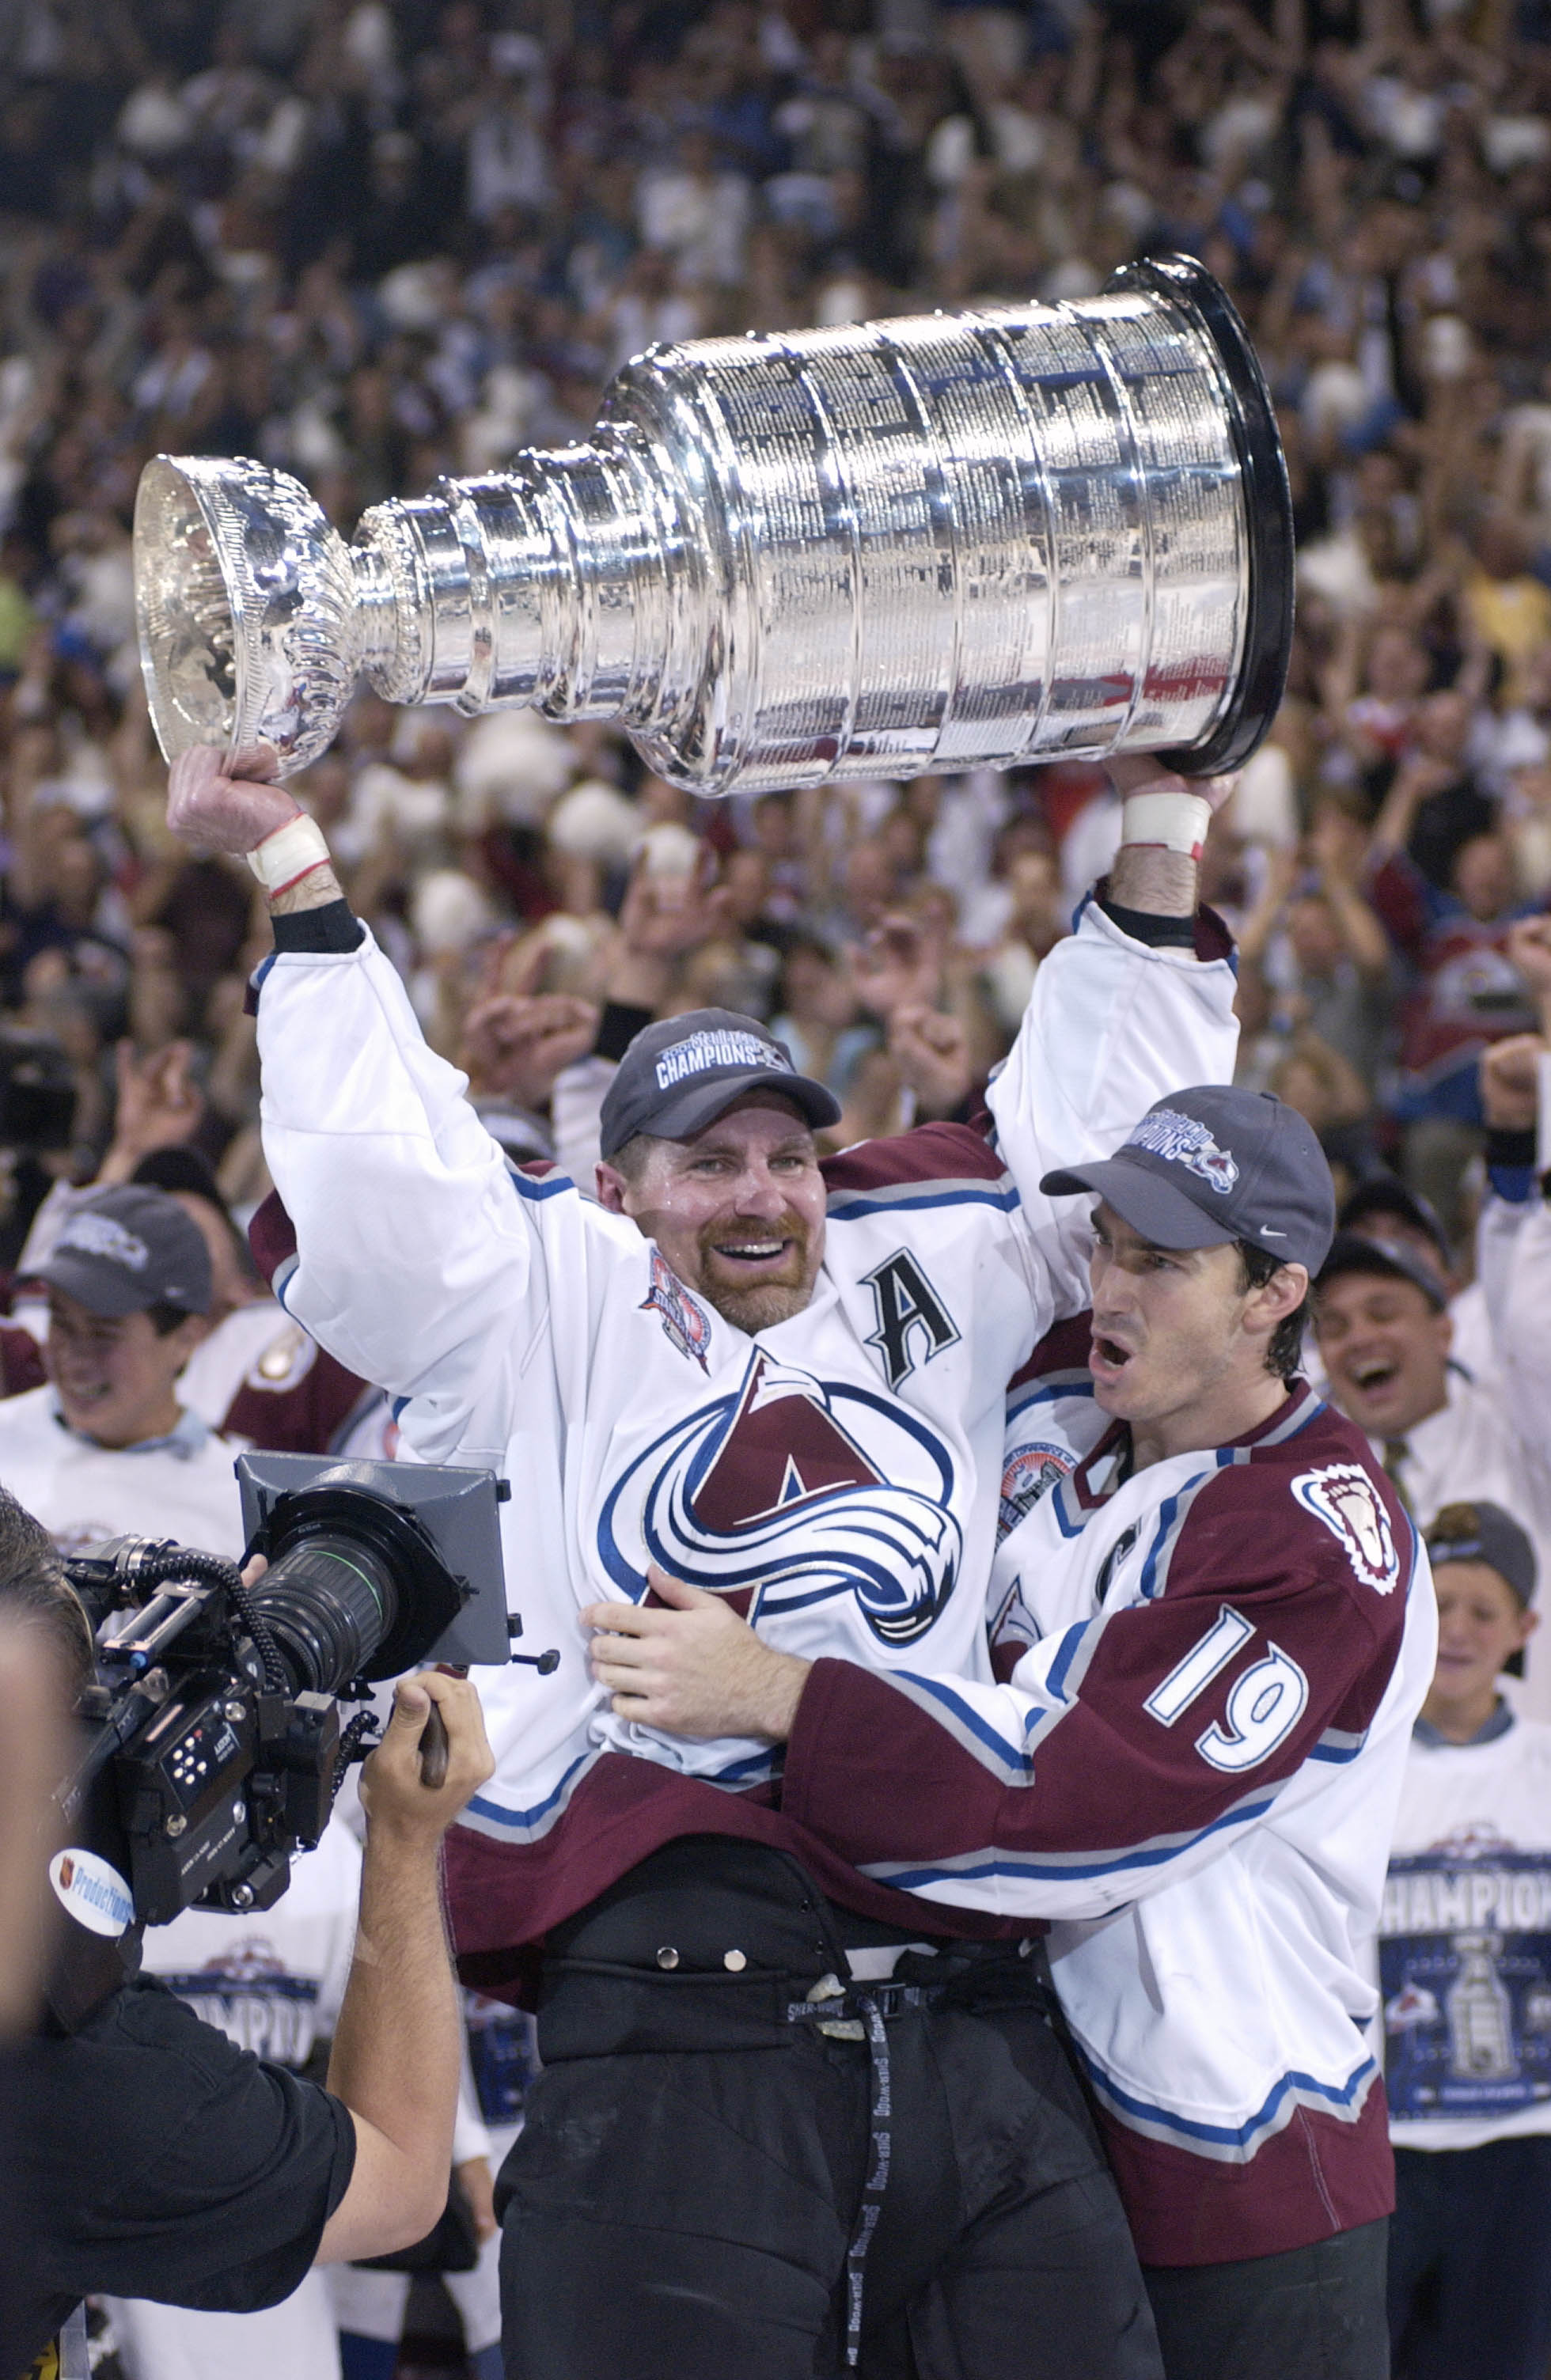 9 Jun 2001:  Ray Bourque #77 of the Colorado Avalanche lifts the cup as teammate Joe Sakic #19 hugs after the Colorado Avalanche defeated the New Jersey Devils 3-1 in game seven of the NHL Stanley Cup Finals at Pepsi Center in Denver, Colorado.  The Avala